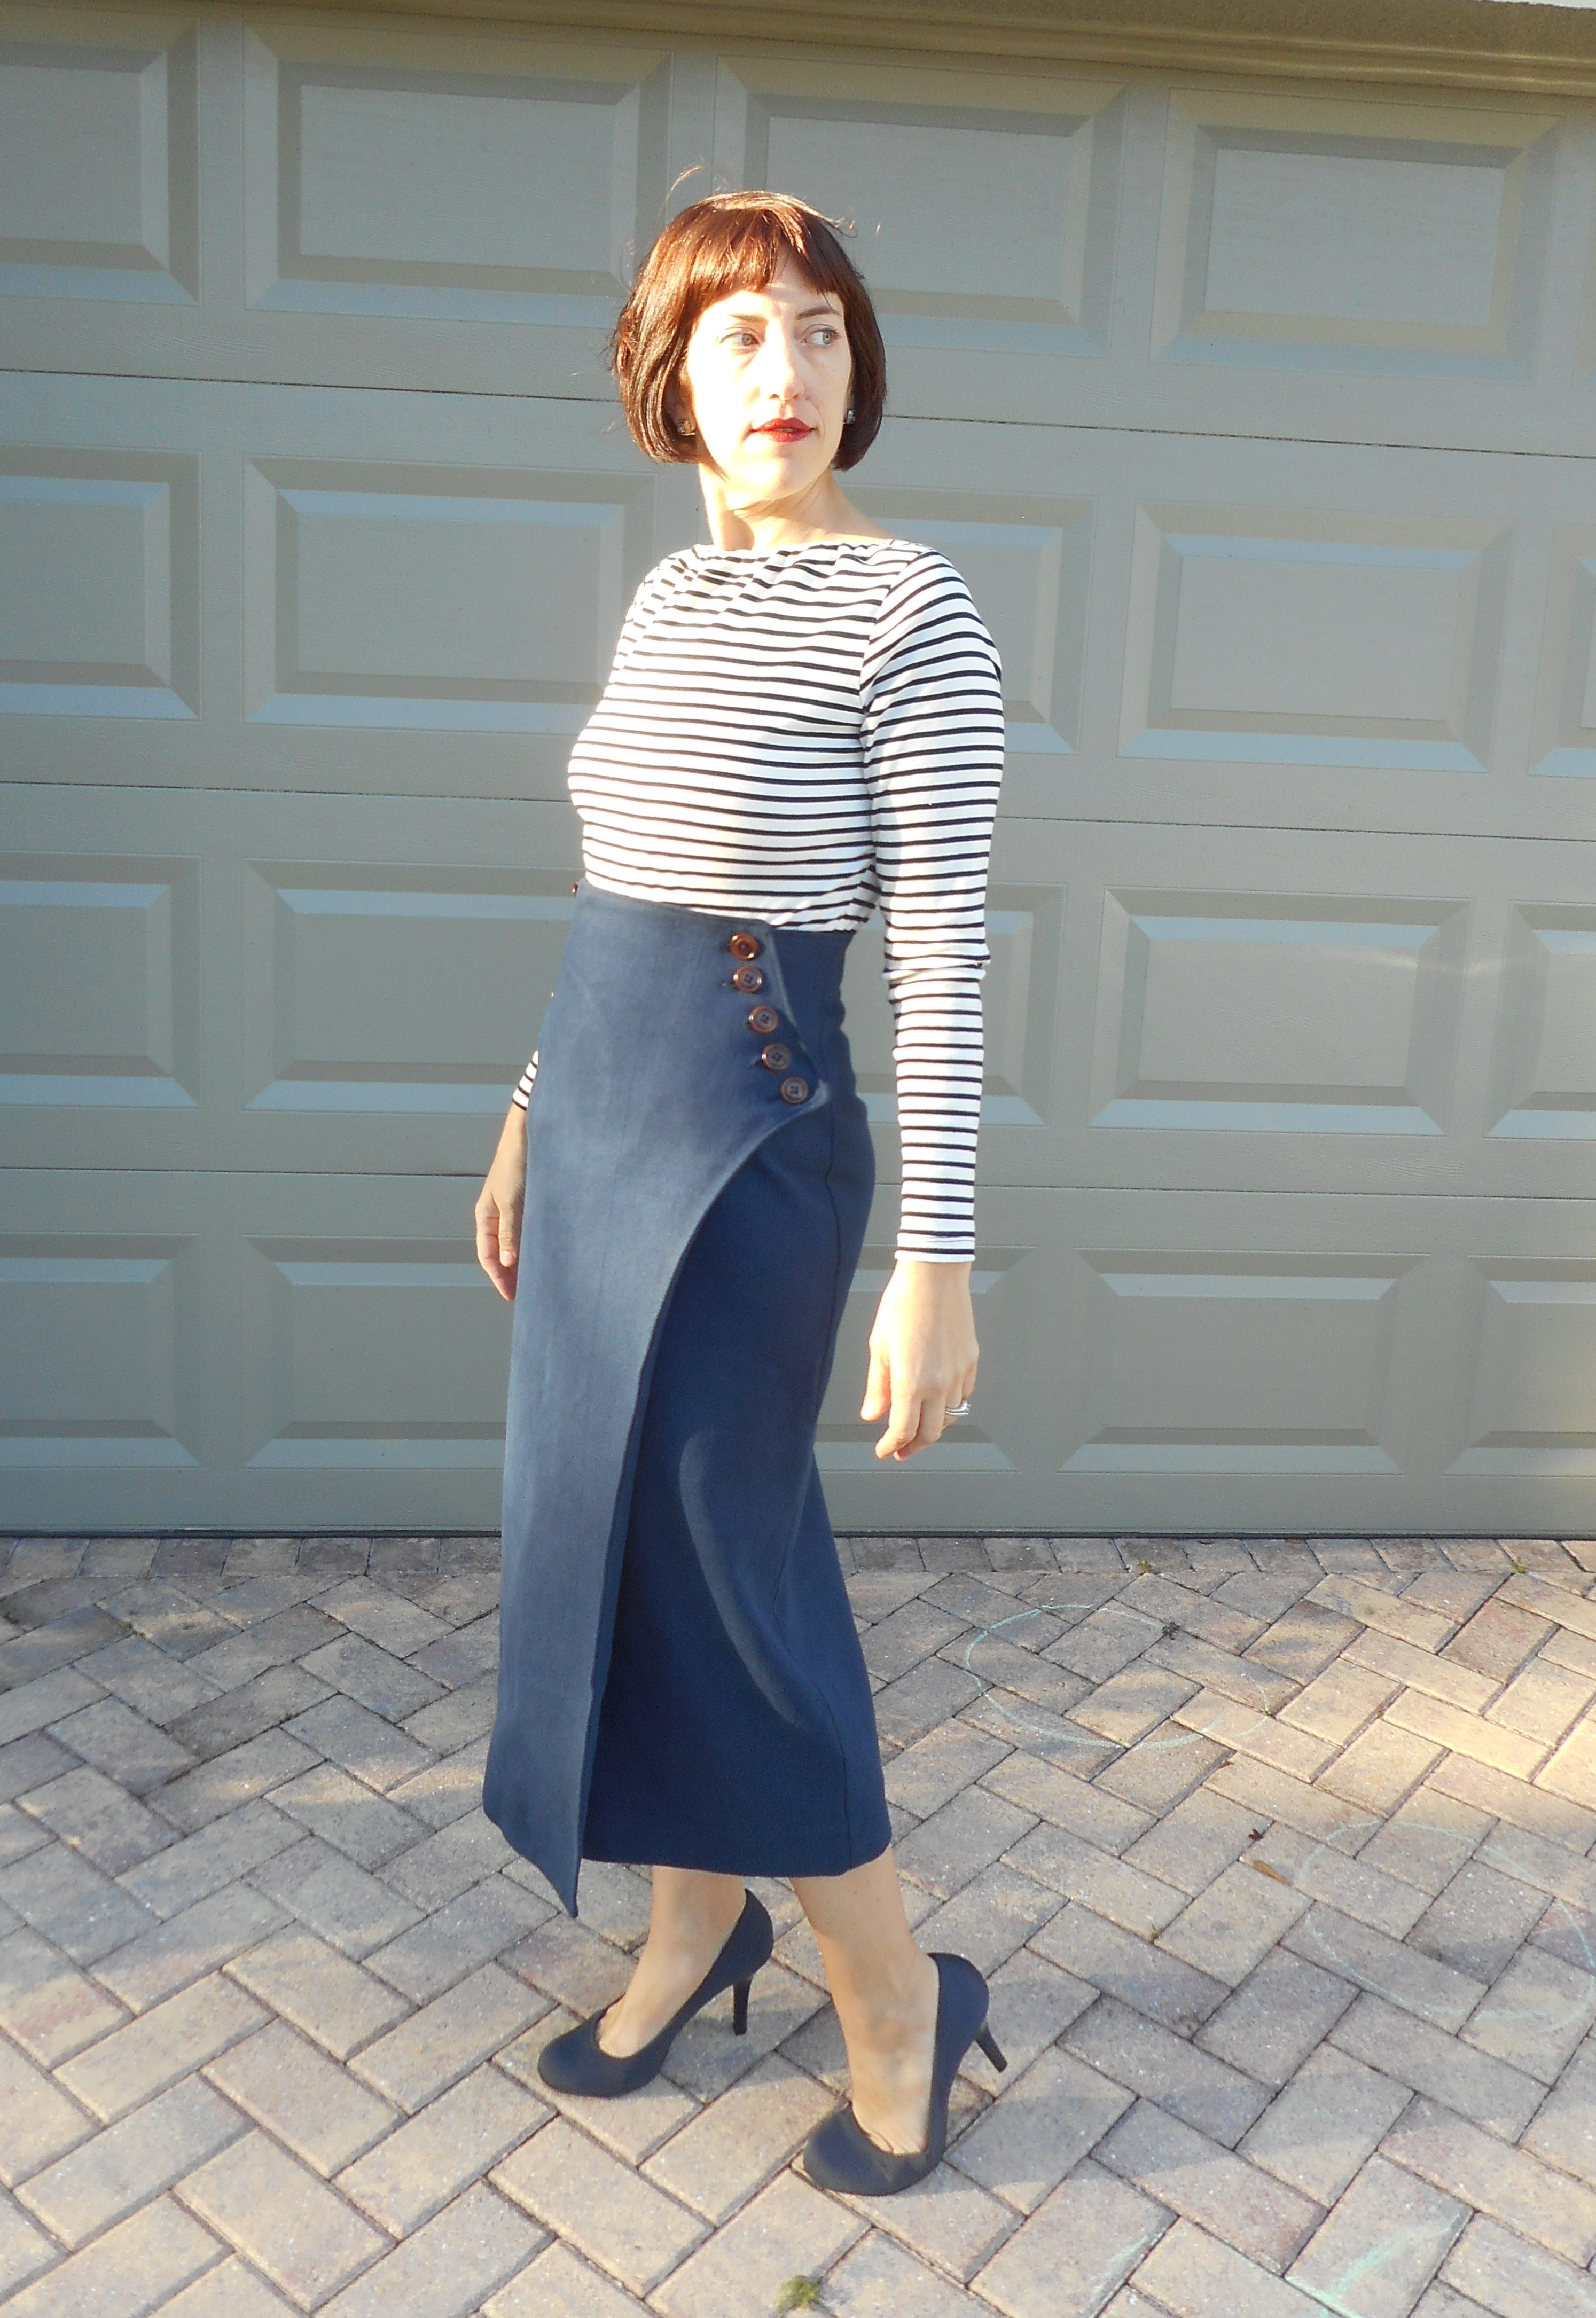 Hemp/Wool Tweed Vogue Wrap Skirt V9209 + Breton Stripe Top